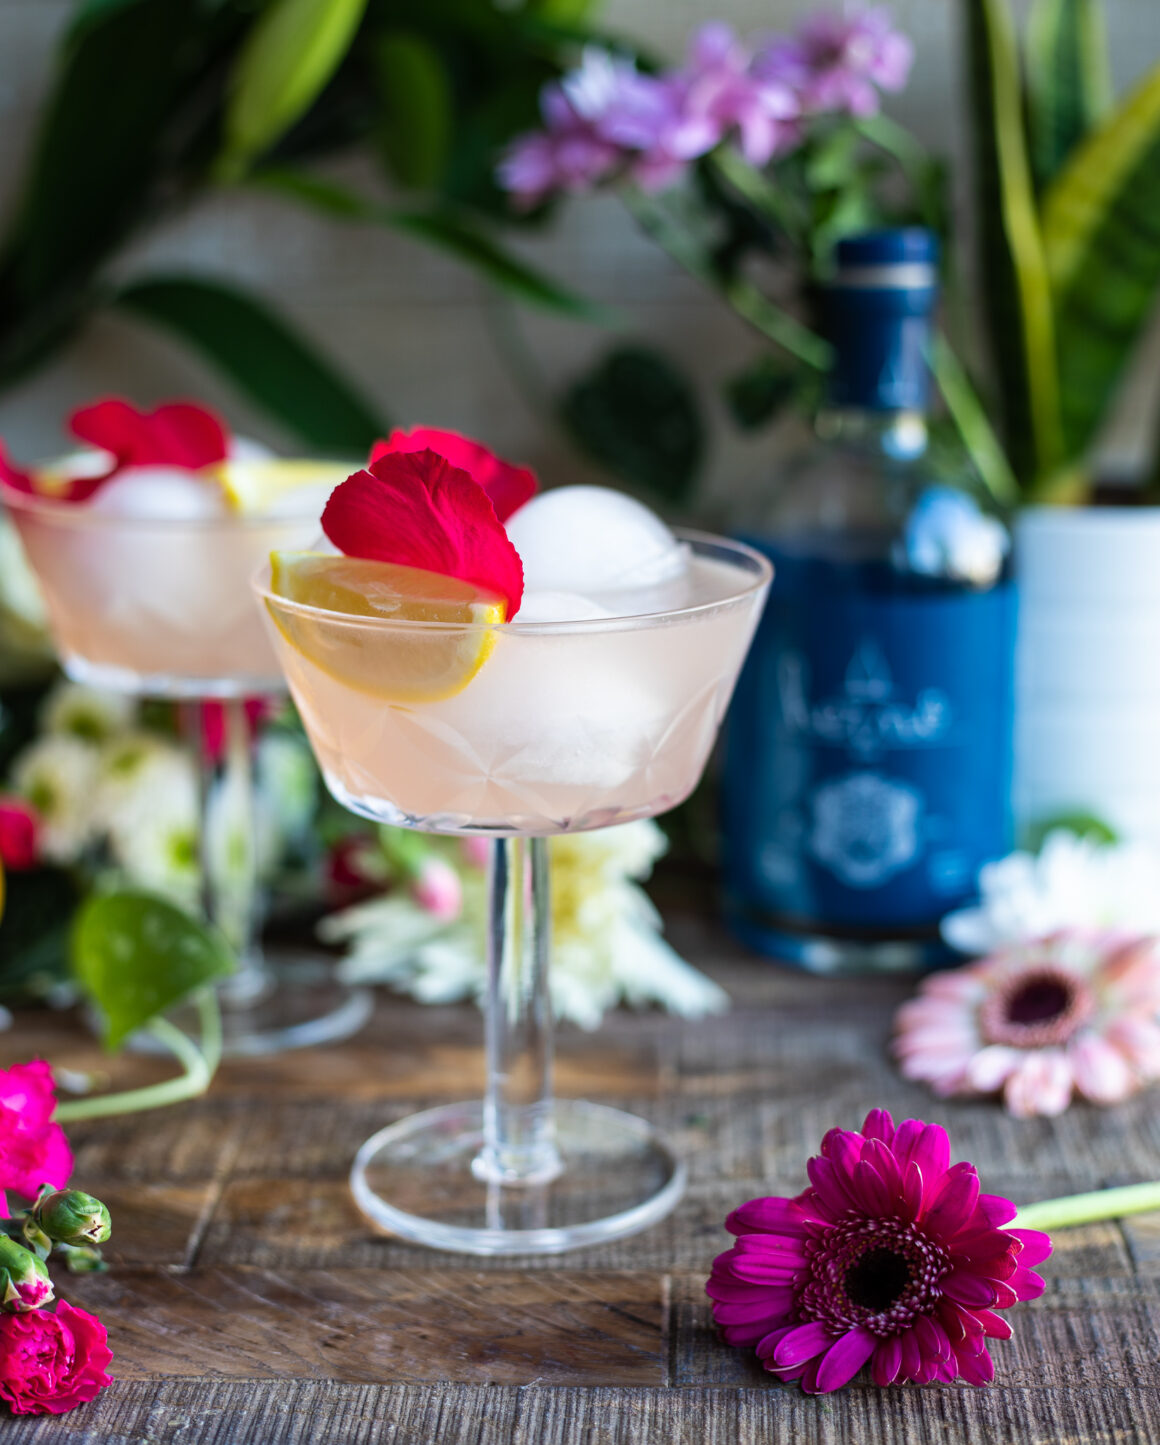 Meet the mixologist - 5 of the best cocktails for Summer - Herno Fizz Rose Gin